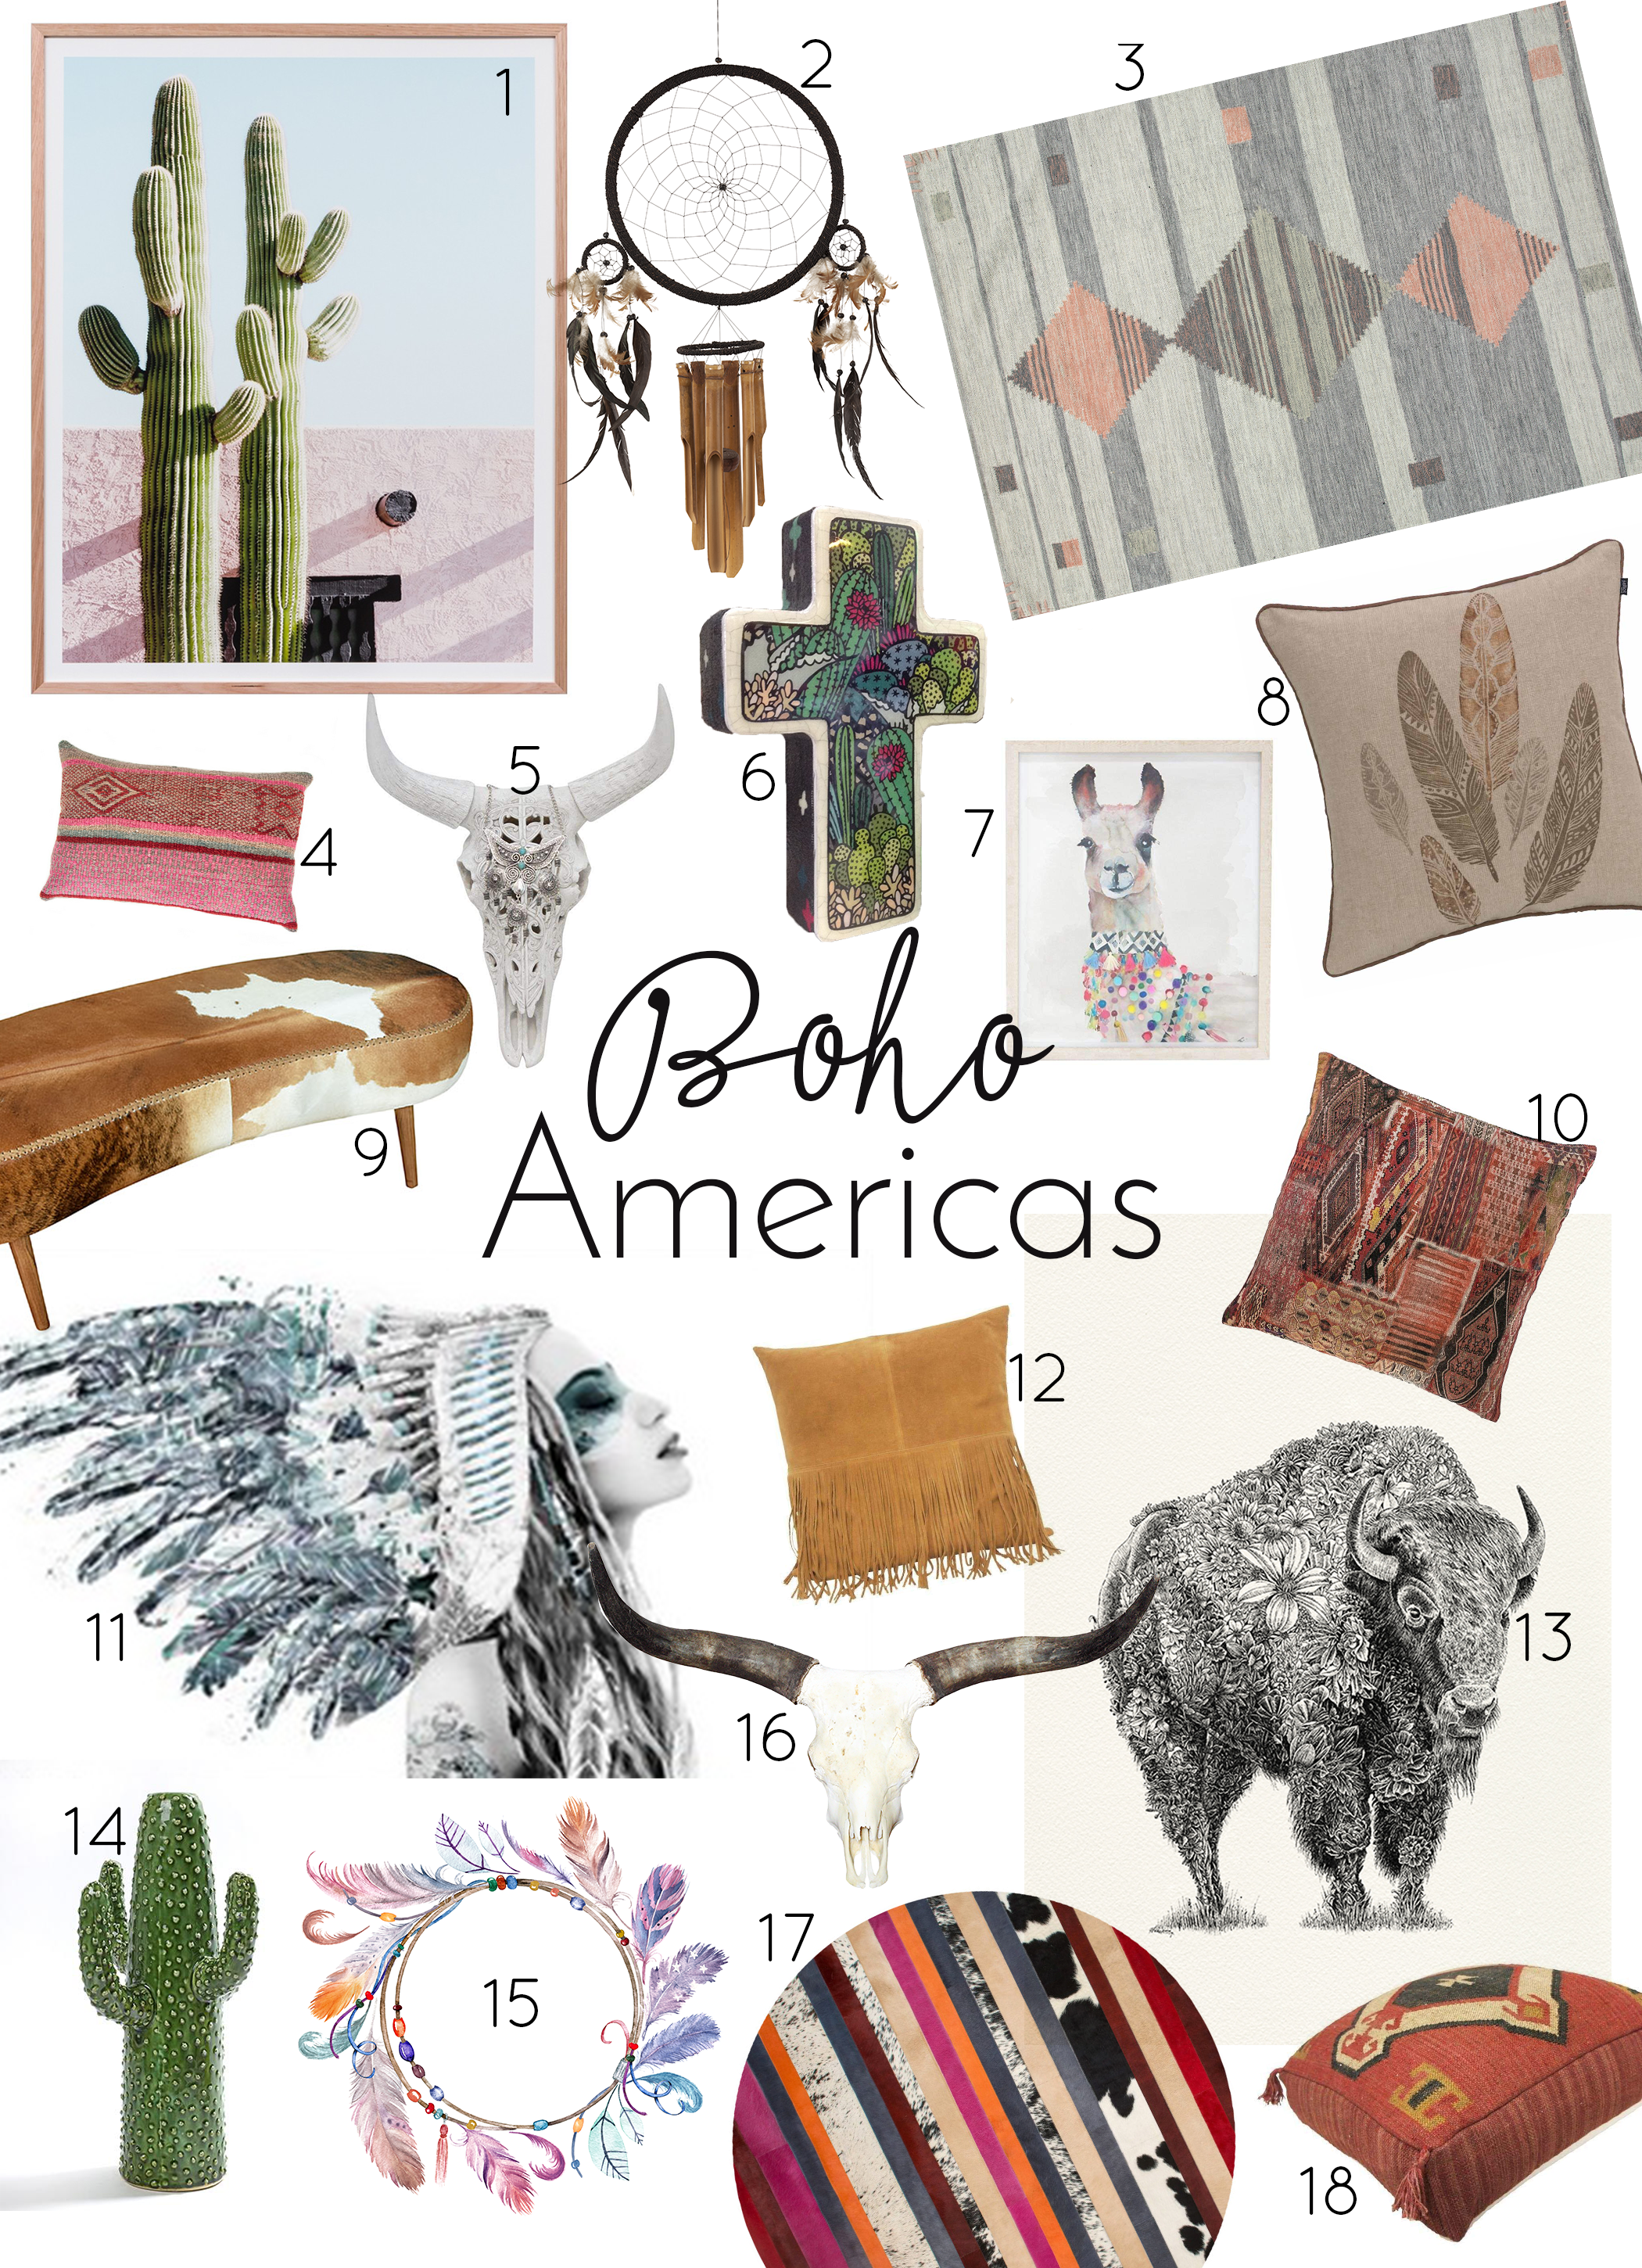 Think of… - Aztec prints, Native America, North and South America, feathers, bison, pampas grass, dream catchers, cactus, bull skulls